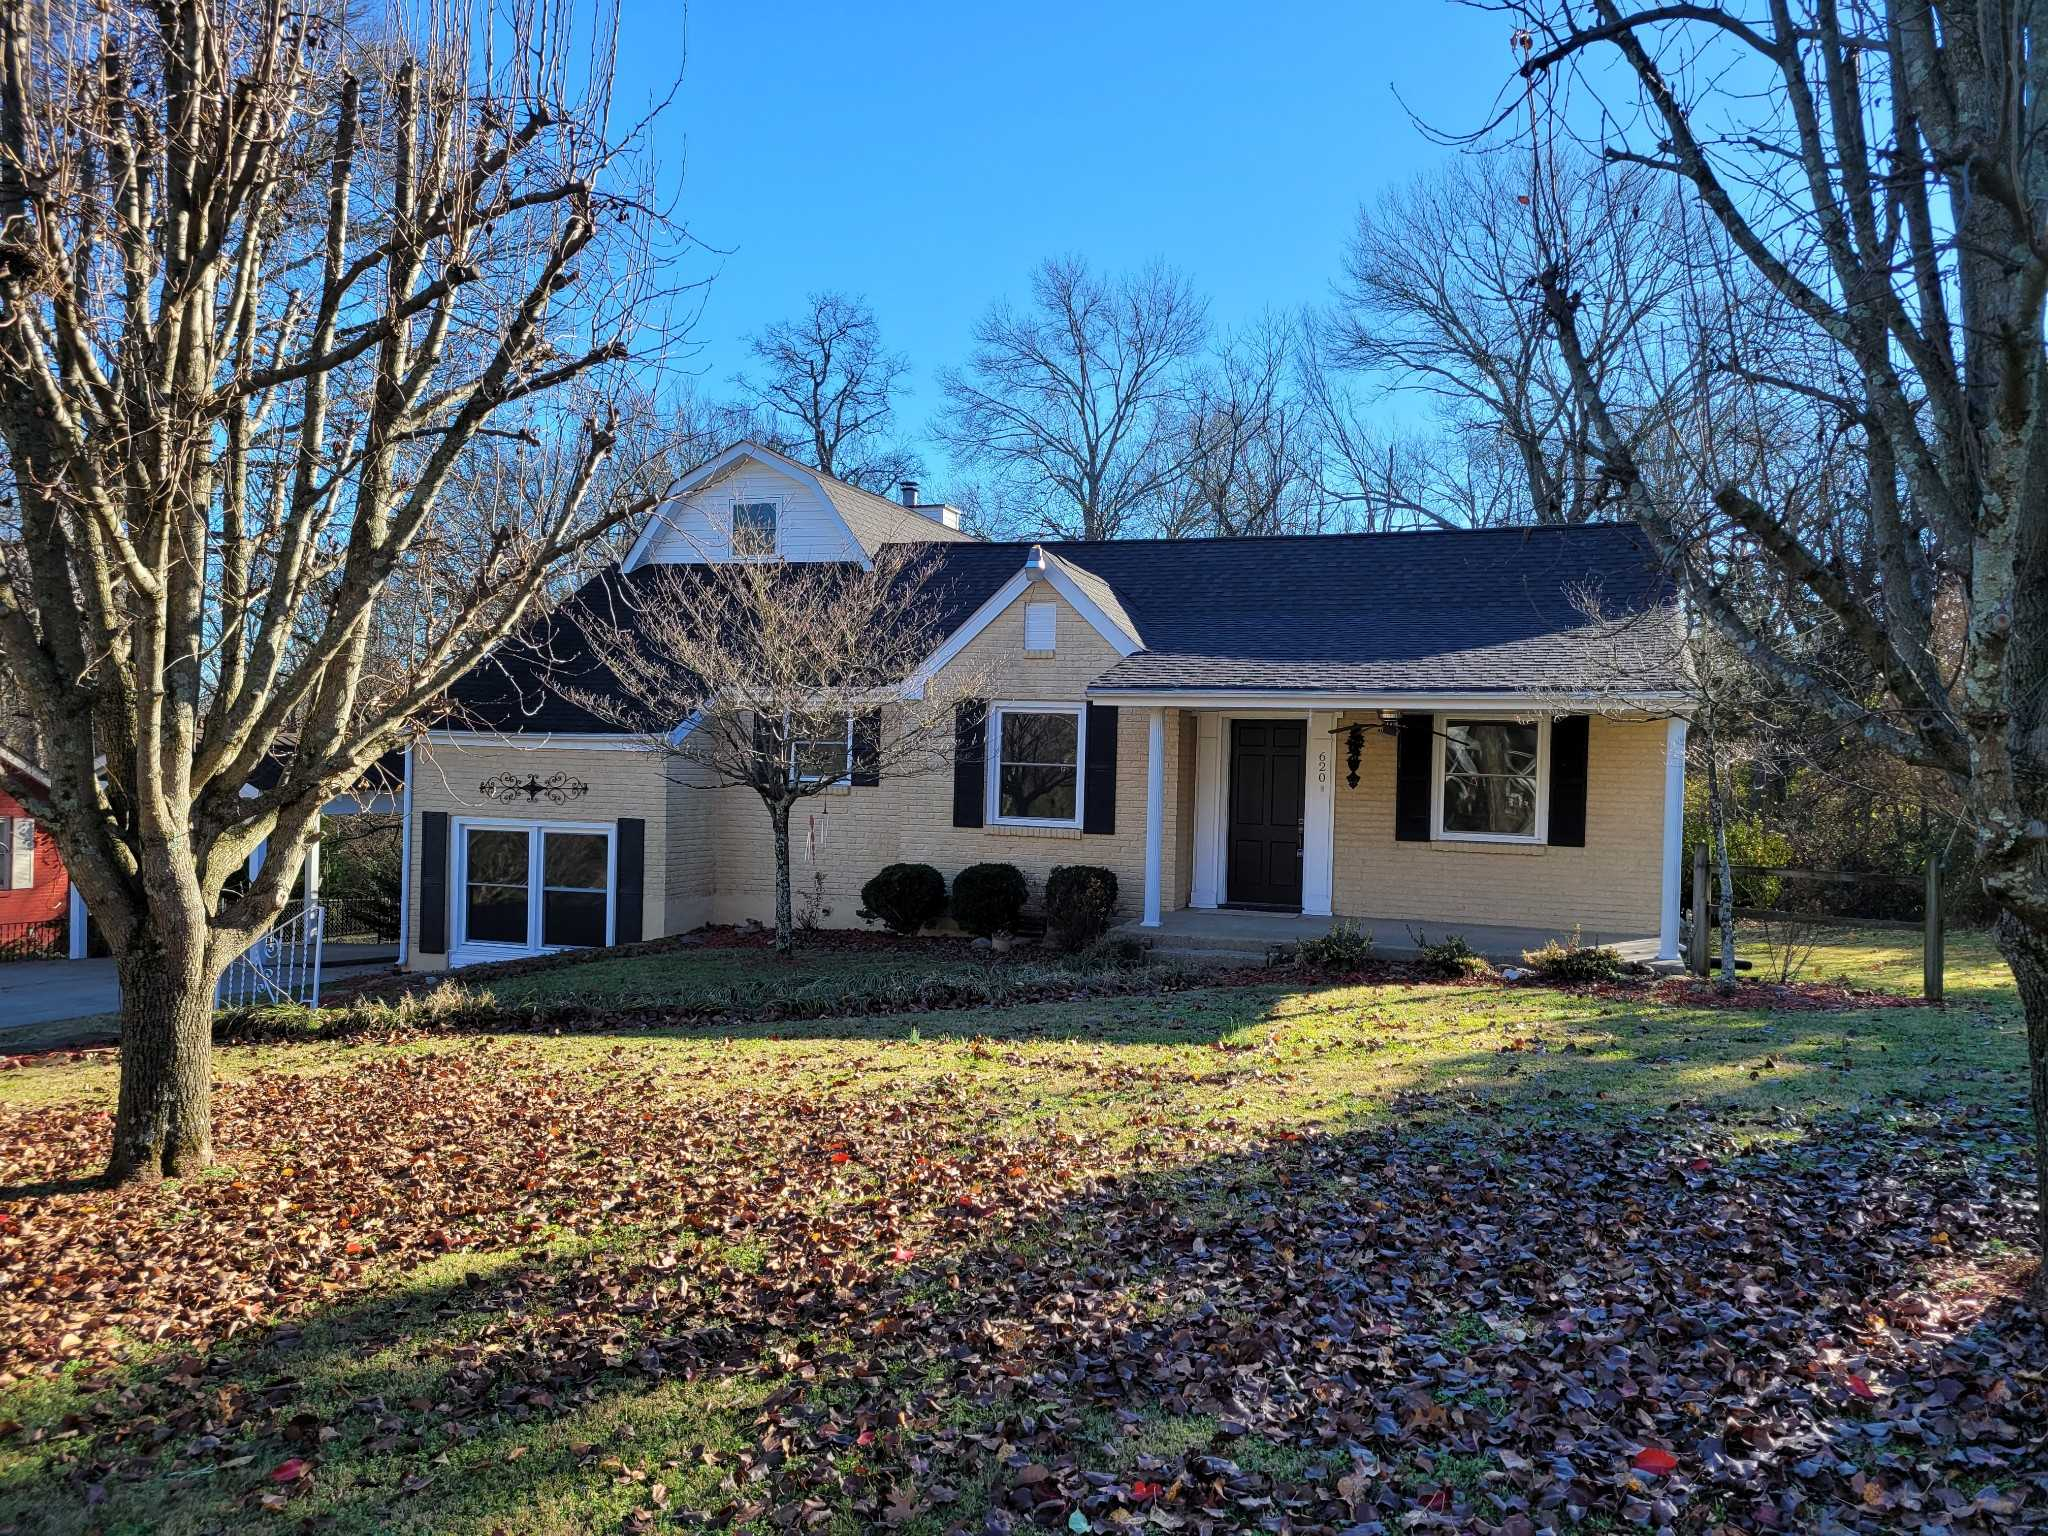 $389,900 - 4Br/2Ba -  for Sale in Na, Madison